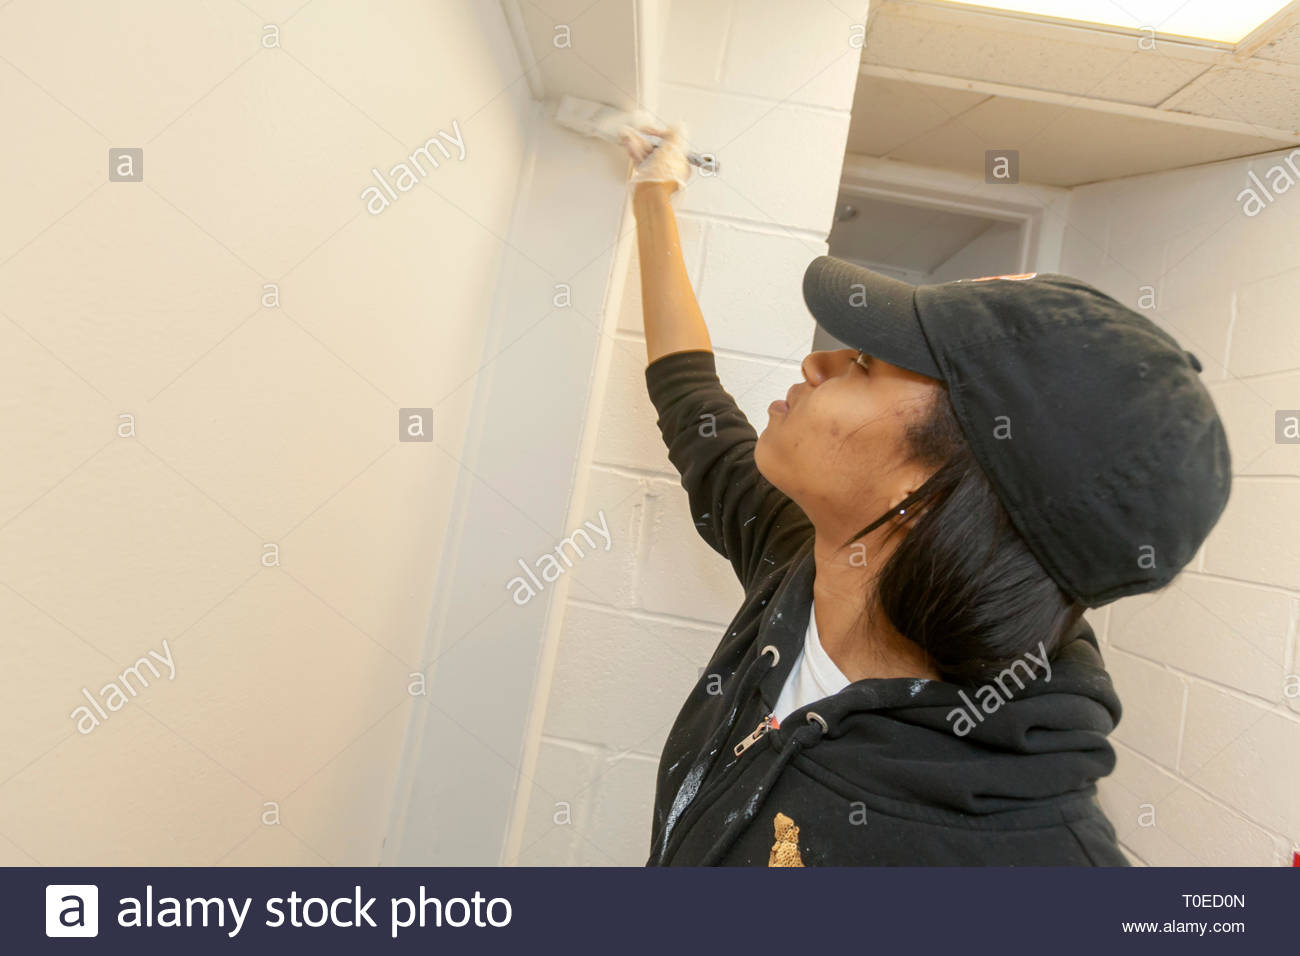 Young men and women engaged in community service painting, renovating and cleaning floors in a community facility. - Stock Image